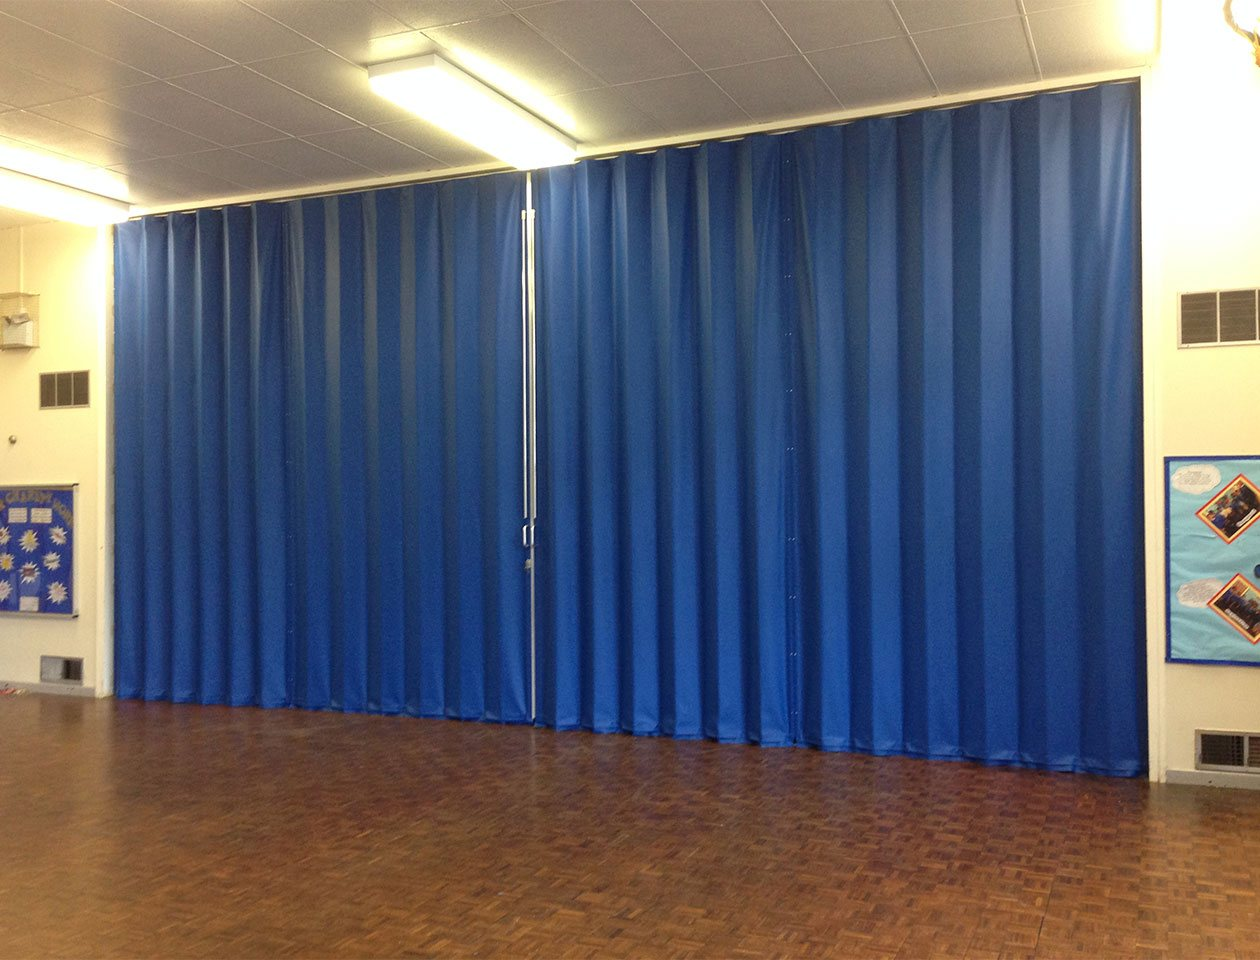 Diy Soundproof Room Divider High Speed Doors And Thermal Break Doors Hag Uk